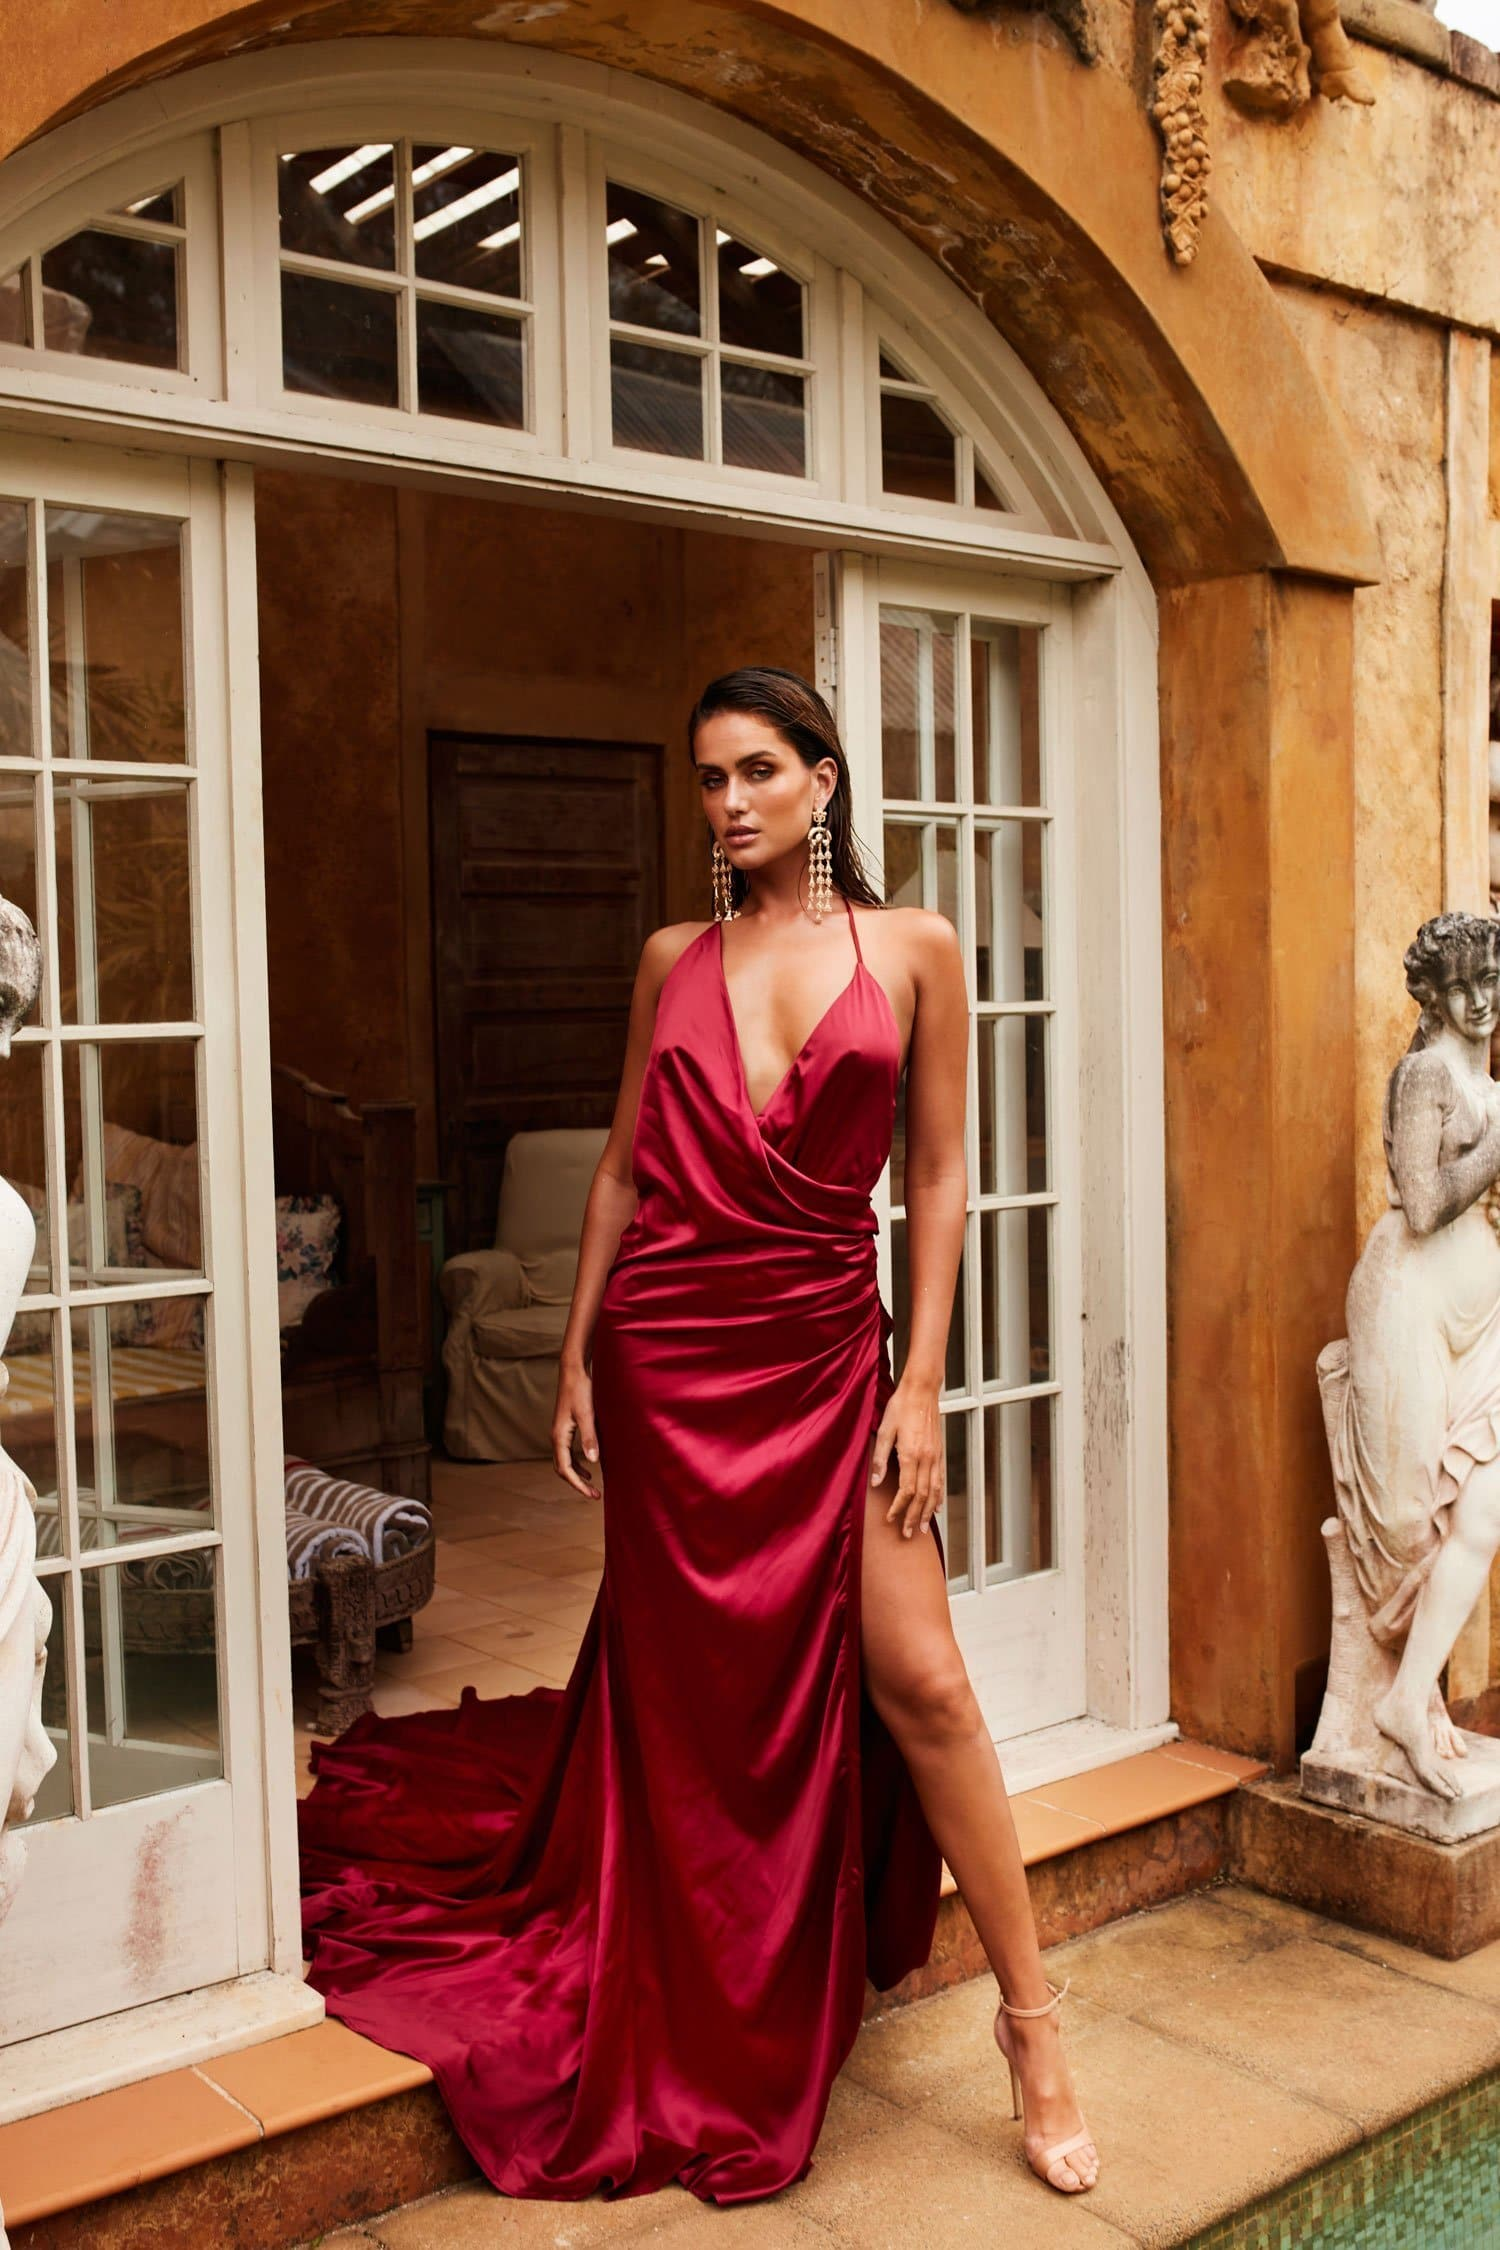 Guinevere Luxe Satin Gown - Wine Red V Neck Dress in Double Satin